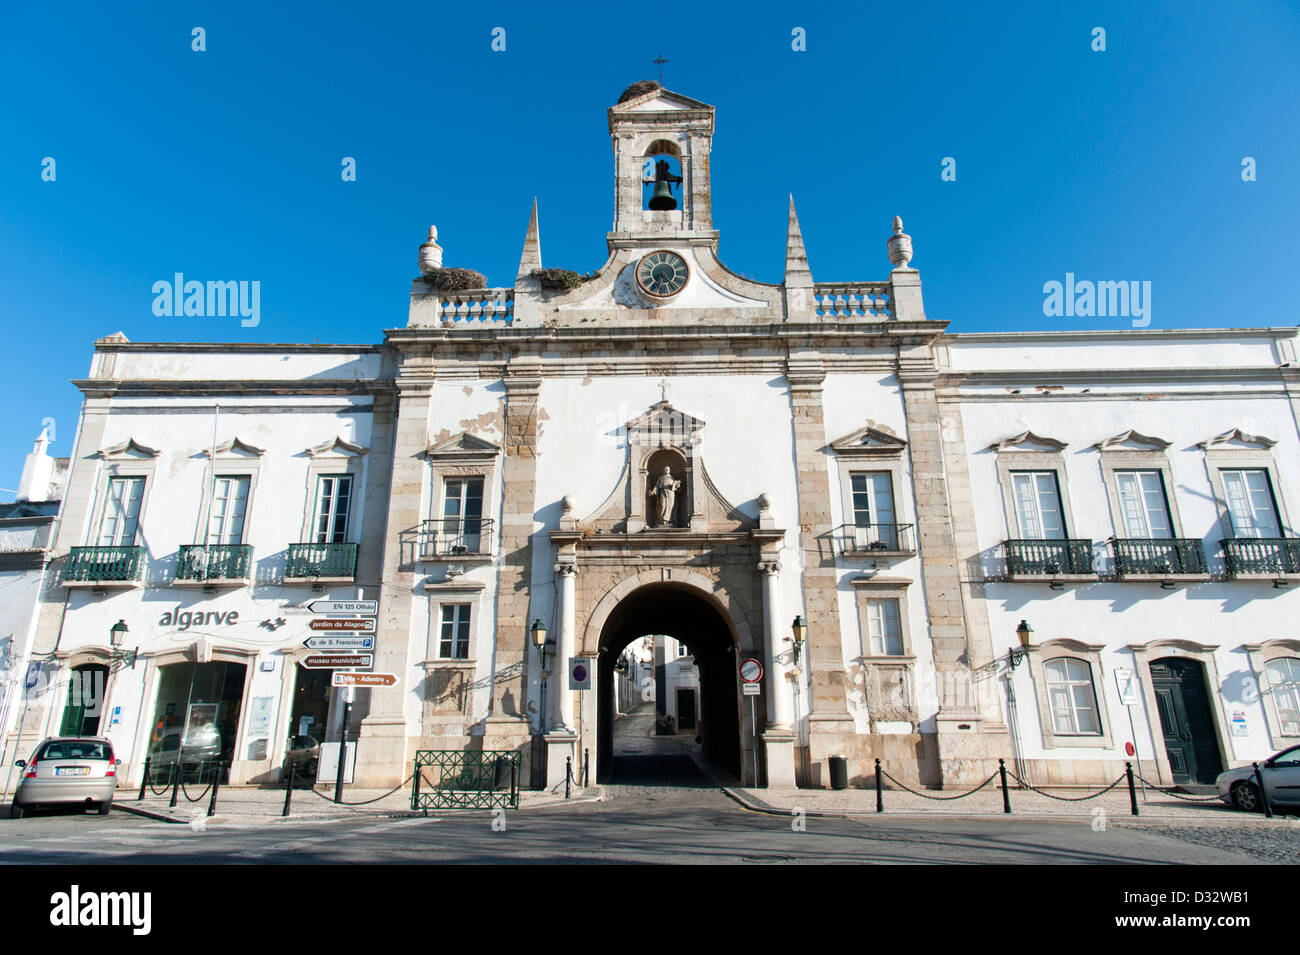 Faro Civil Government building and the entrance to the old town, Portugal - Stock Image